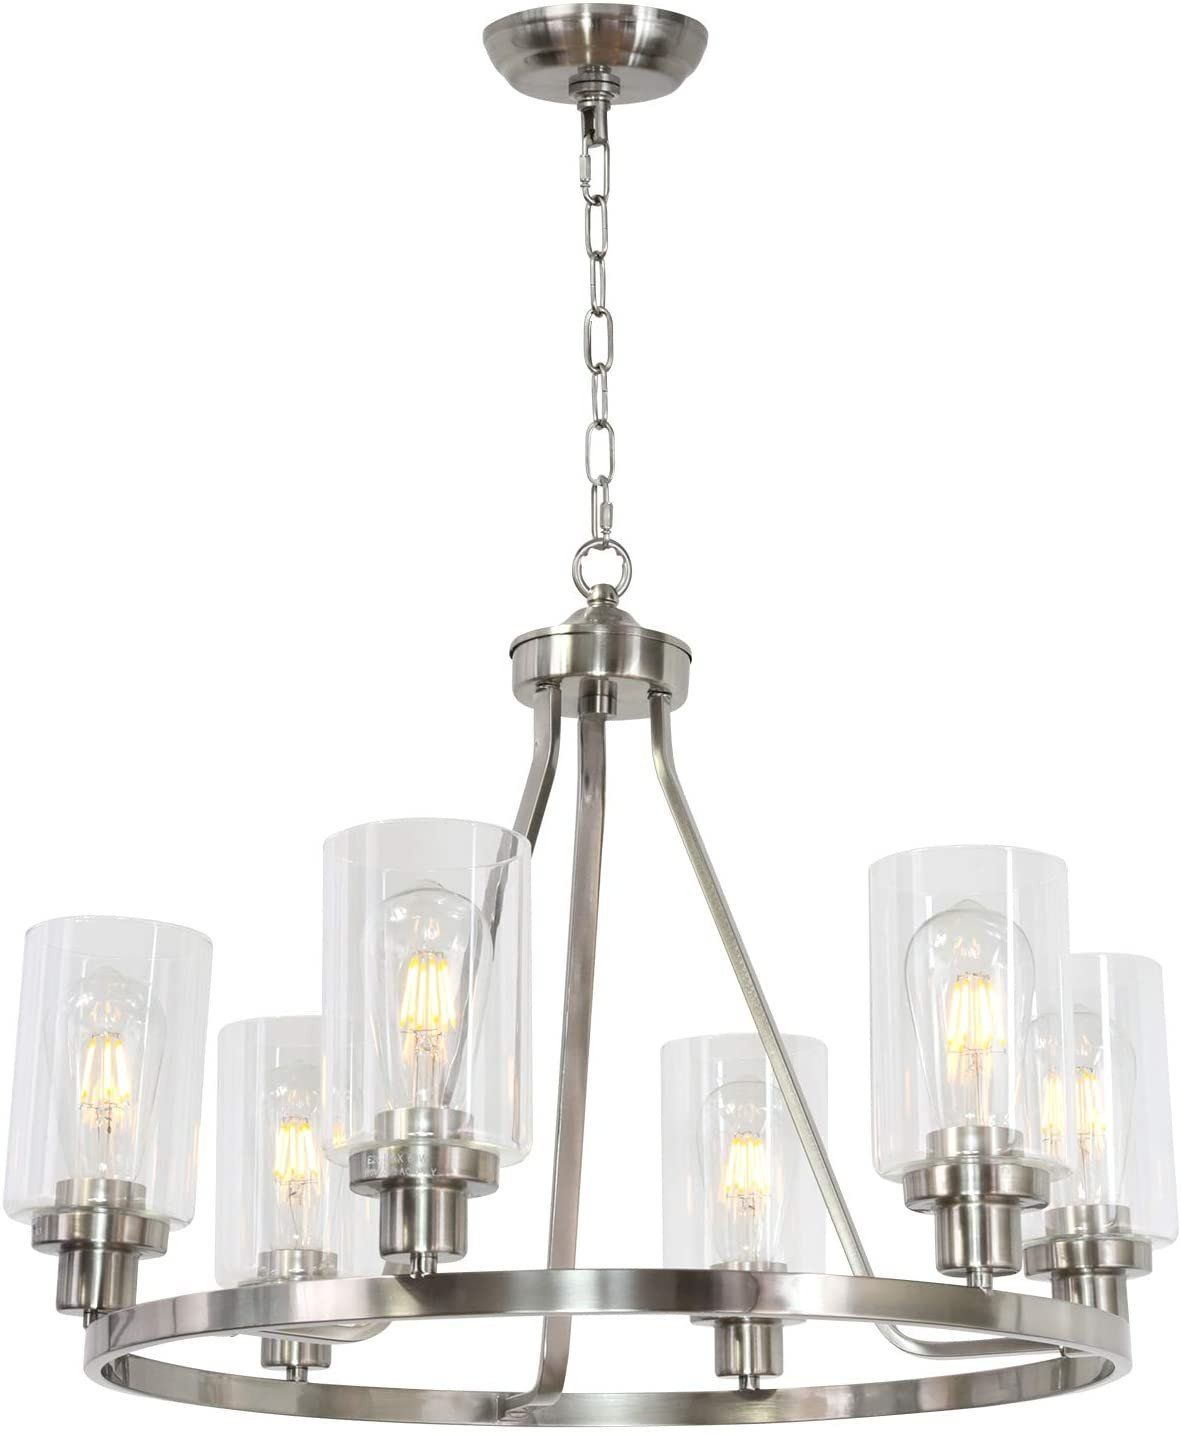 MELUCEE 6 Lights Round Chandelier Brushed Nickel Island Lighting Dining Room Lighting Fixtures Hanging Glass Pendant Light for Kitchen Living Room